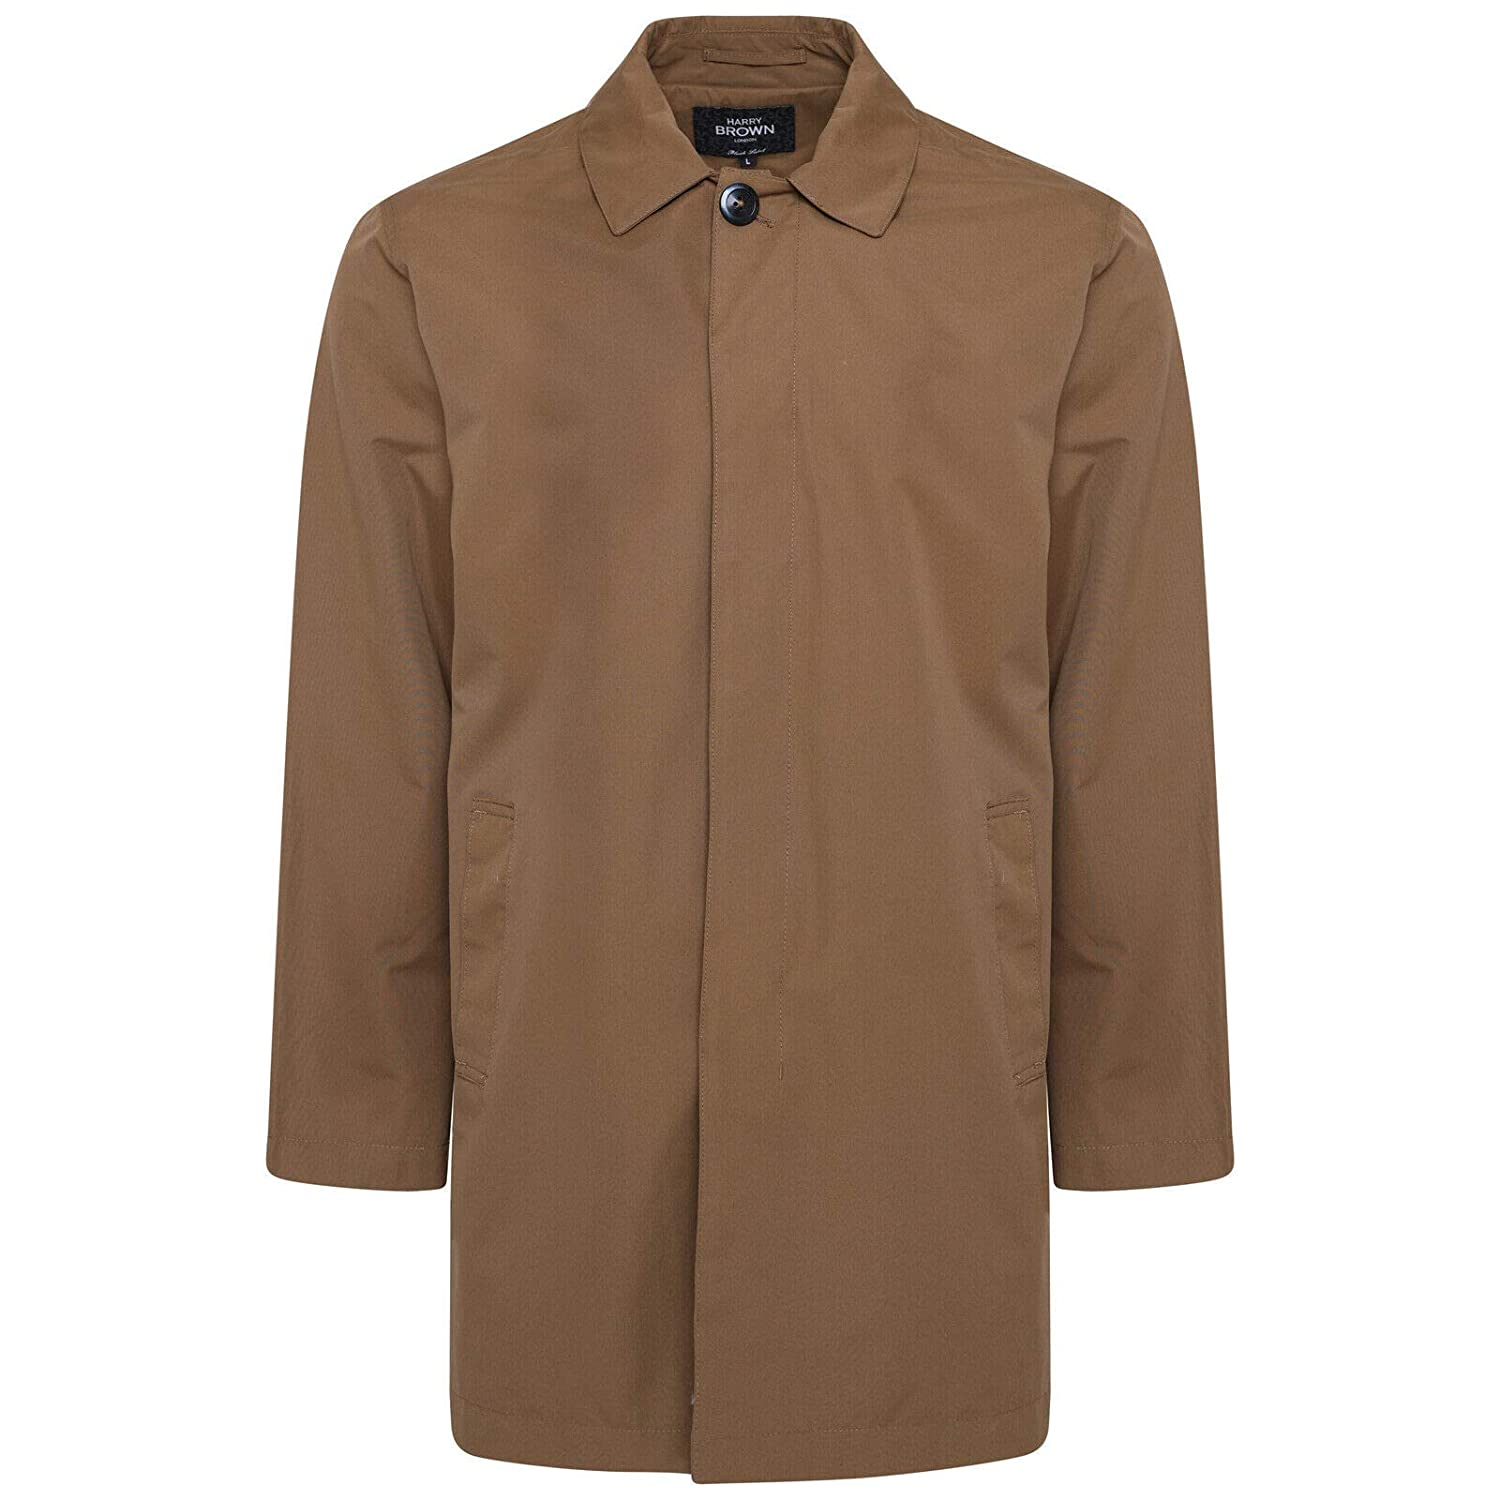 HARRY BROWN Trench Coat Big /& Tall Single Breasted Black